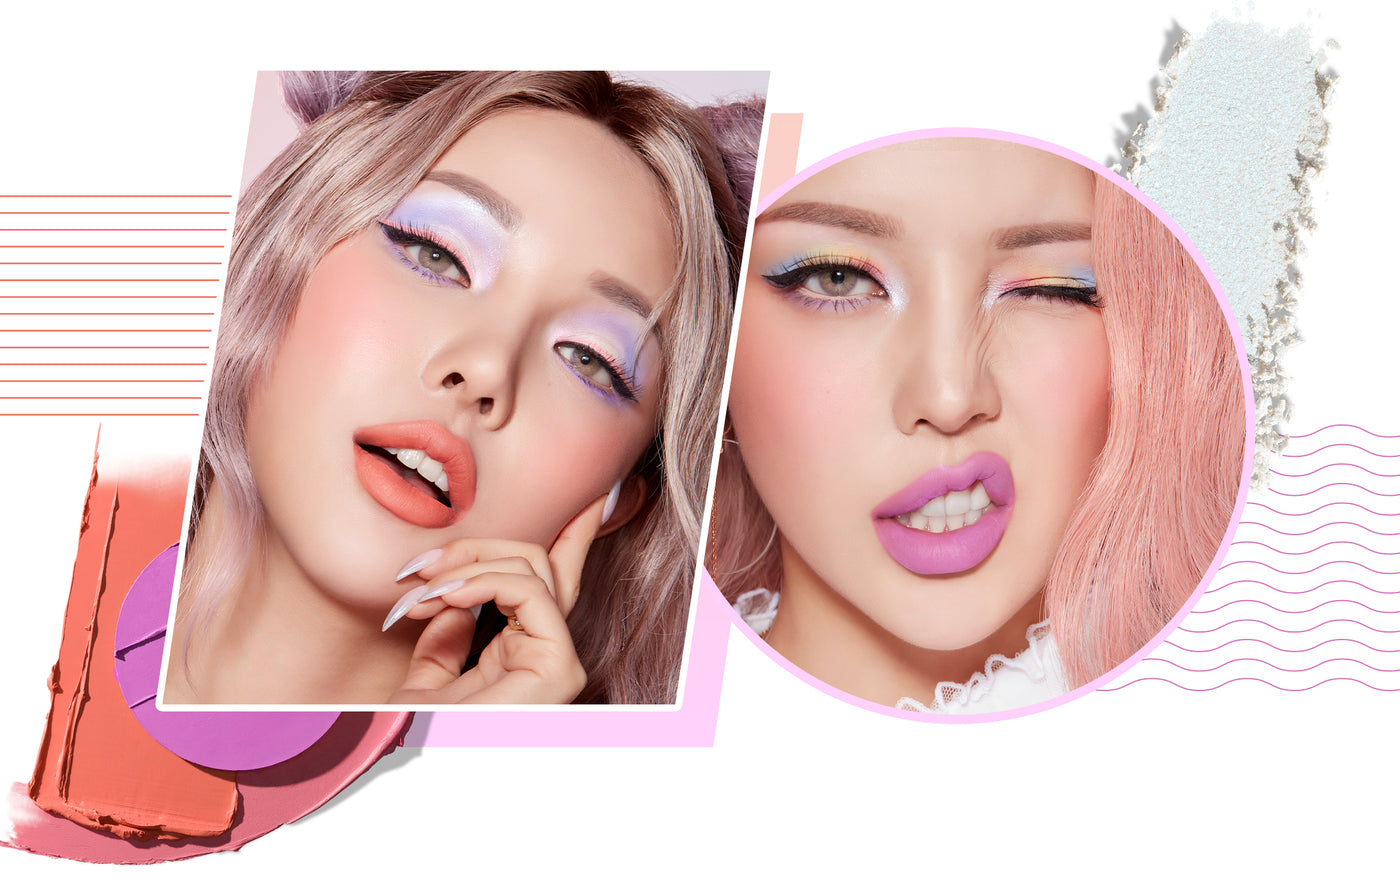 2 Pony Park makeup looks using Icy Fantasy Collection, makeup smears and geometric shapes